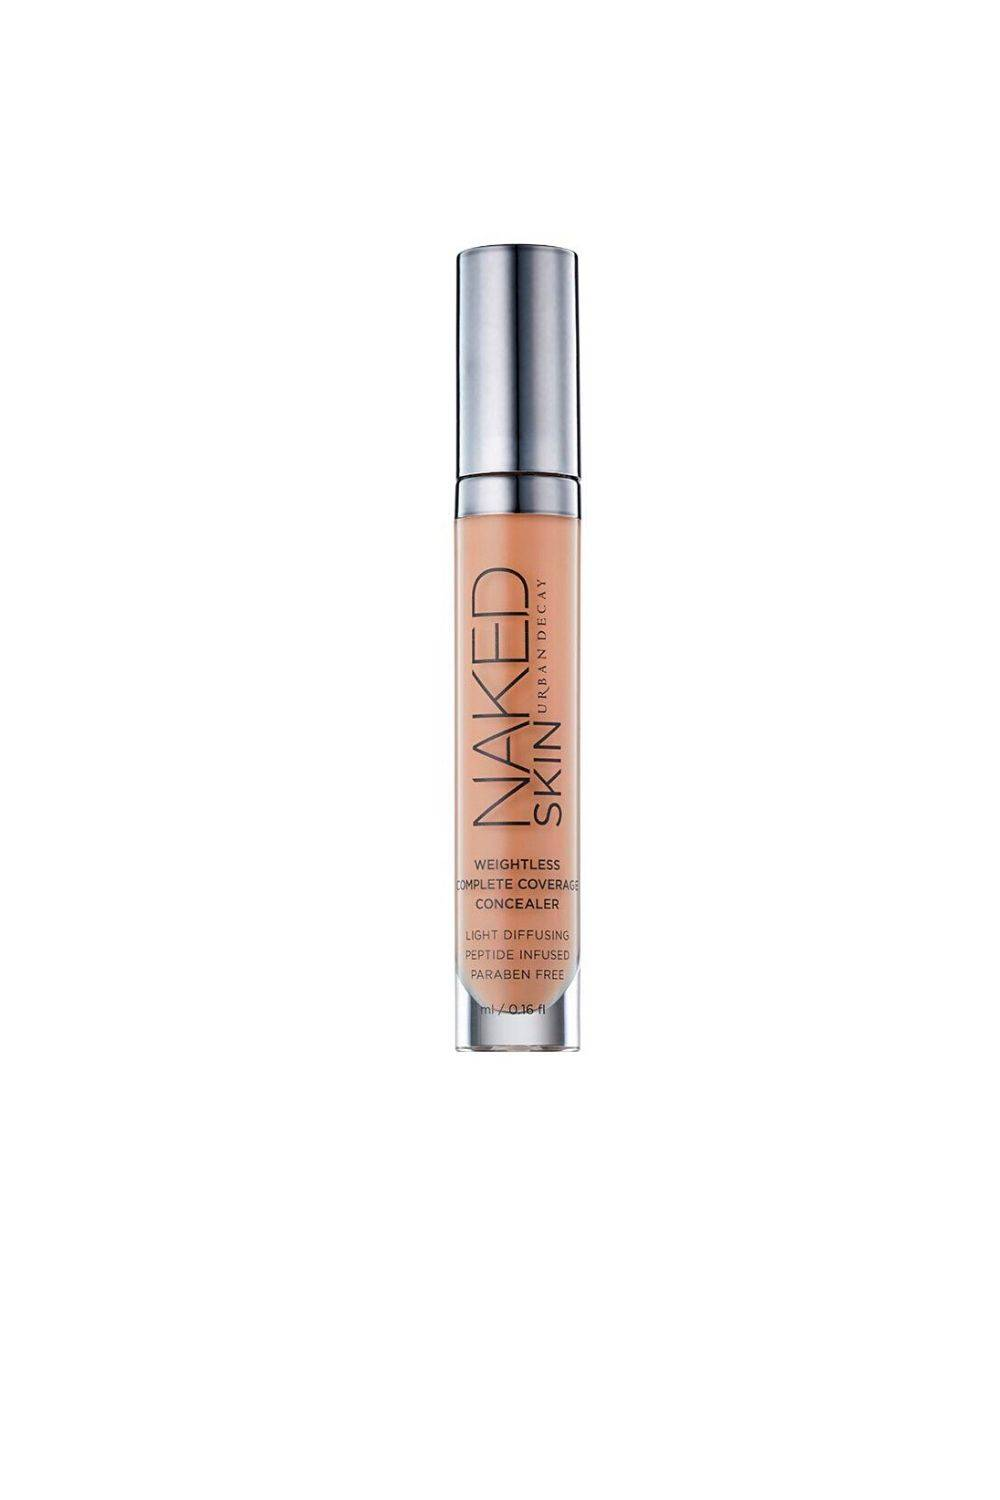 Naked Skin Weightless de Urban Decay